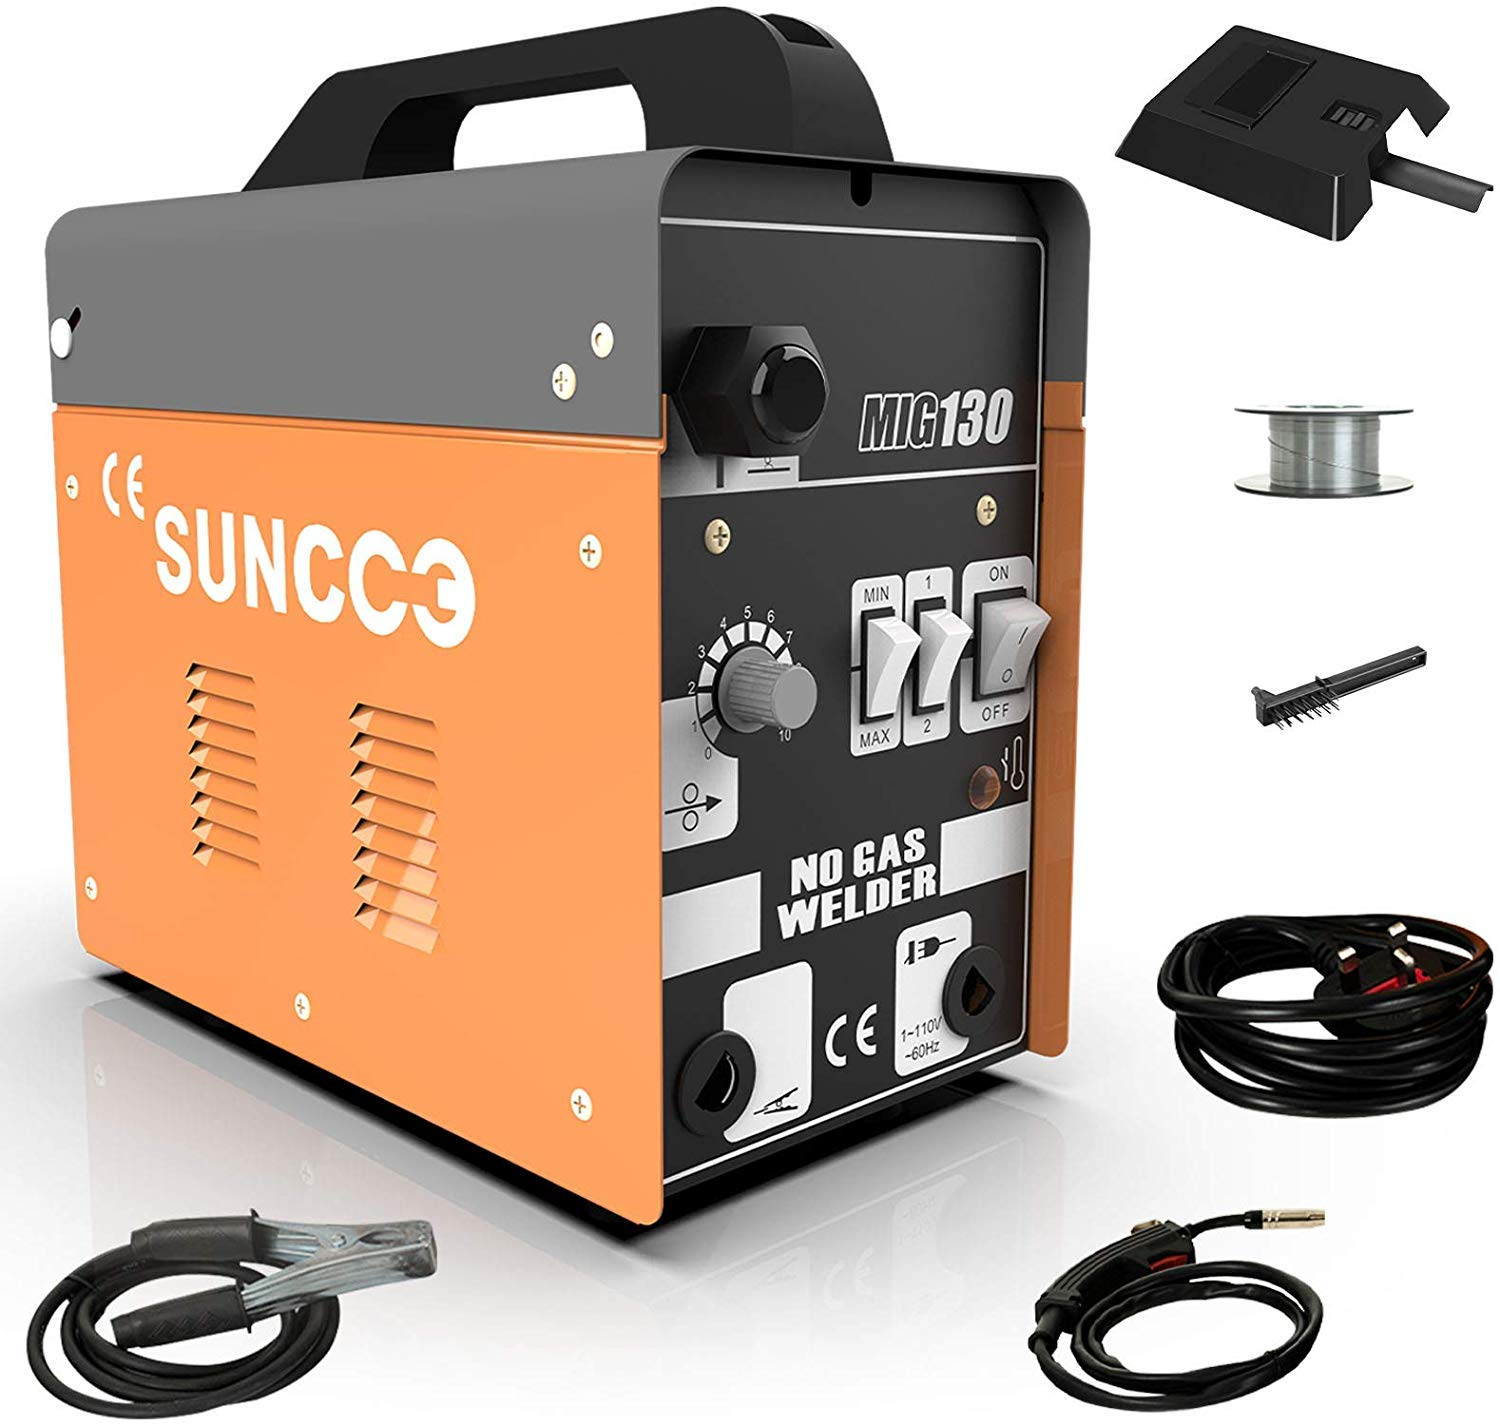 SUNCOO 130 MIG Welder Flux Core Wire Automatic Feed Gasless Little Welder Portable Welding Machine 110 Volt with Free Mask and Spool Gun Yellow by SUNCOO